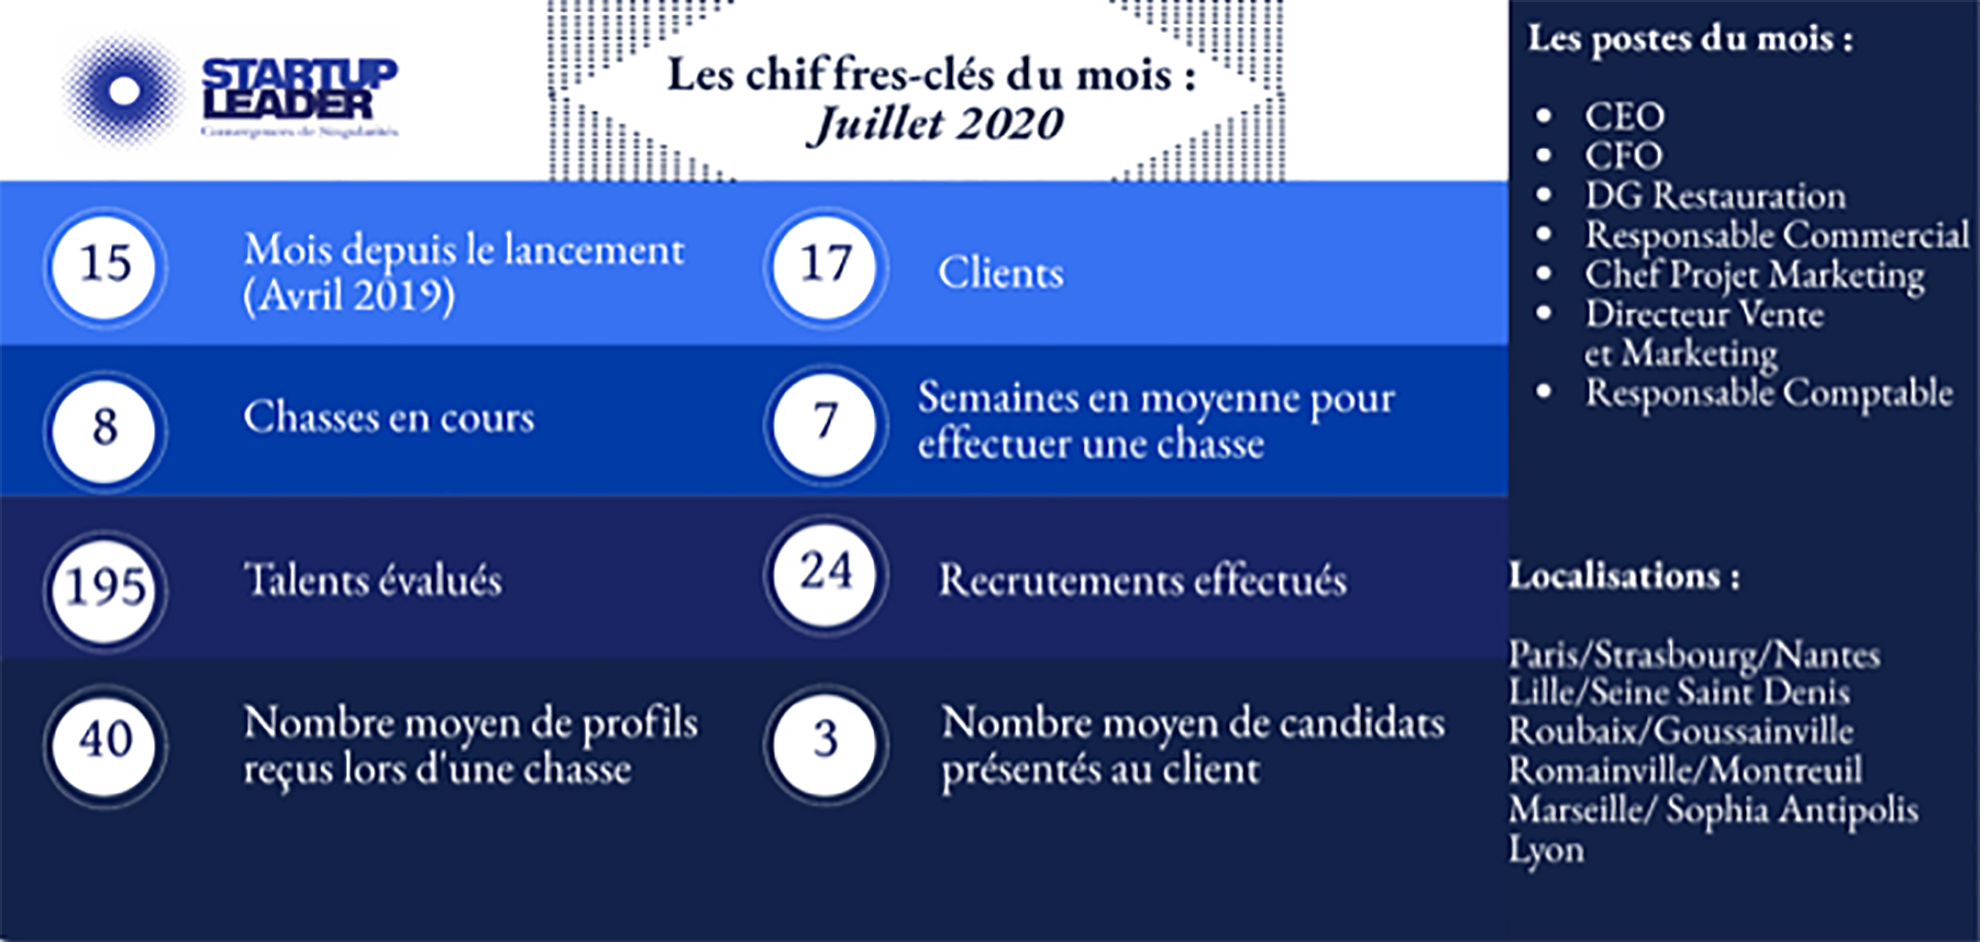 Startup Leader Chiffres clés Recrutement